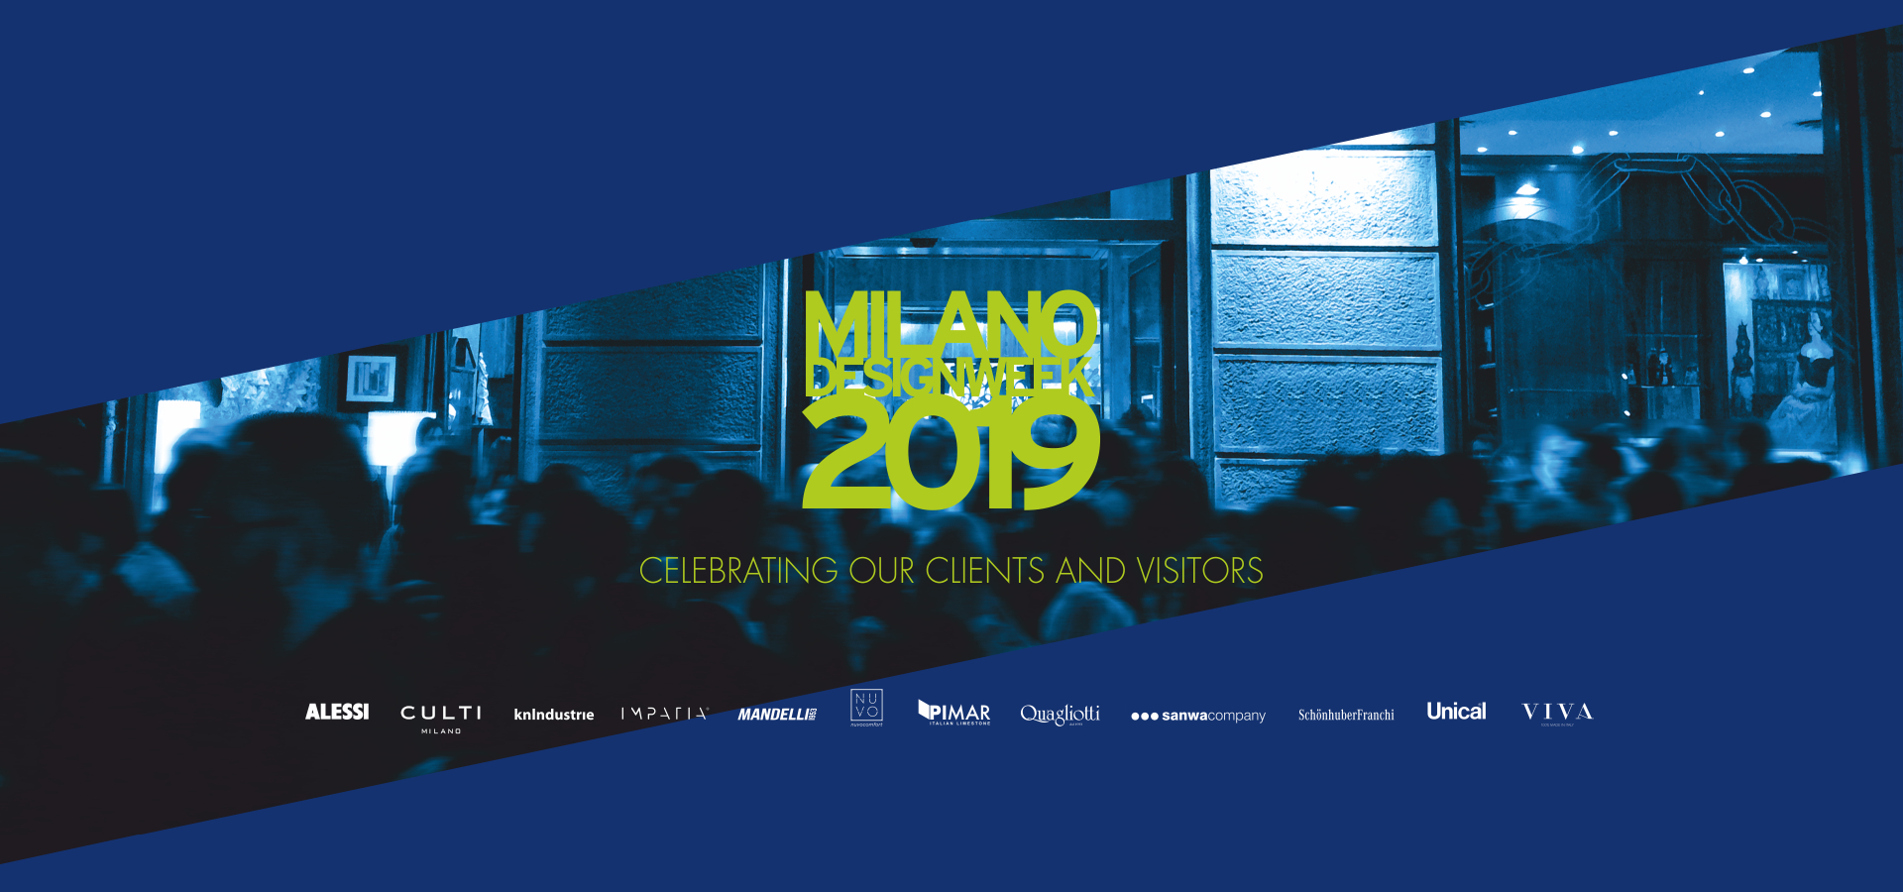 Il Quadrifoglio_MDW_2019_Celebrating our clients and visitors